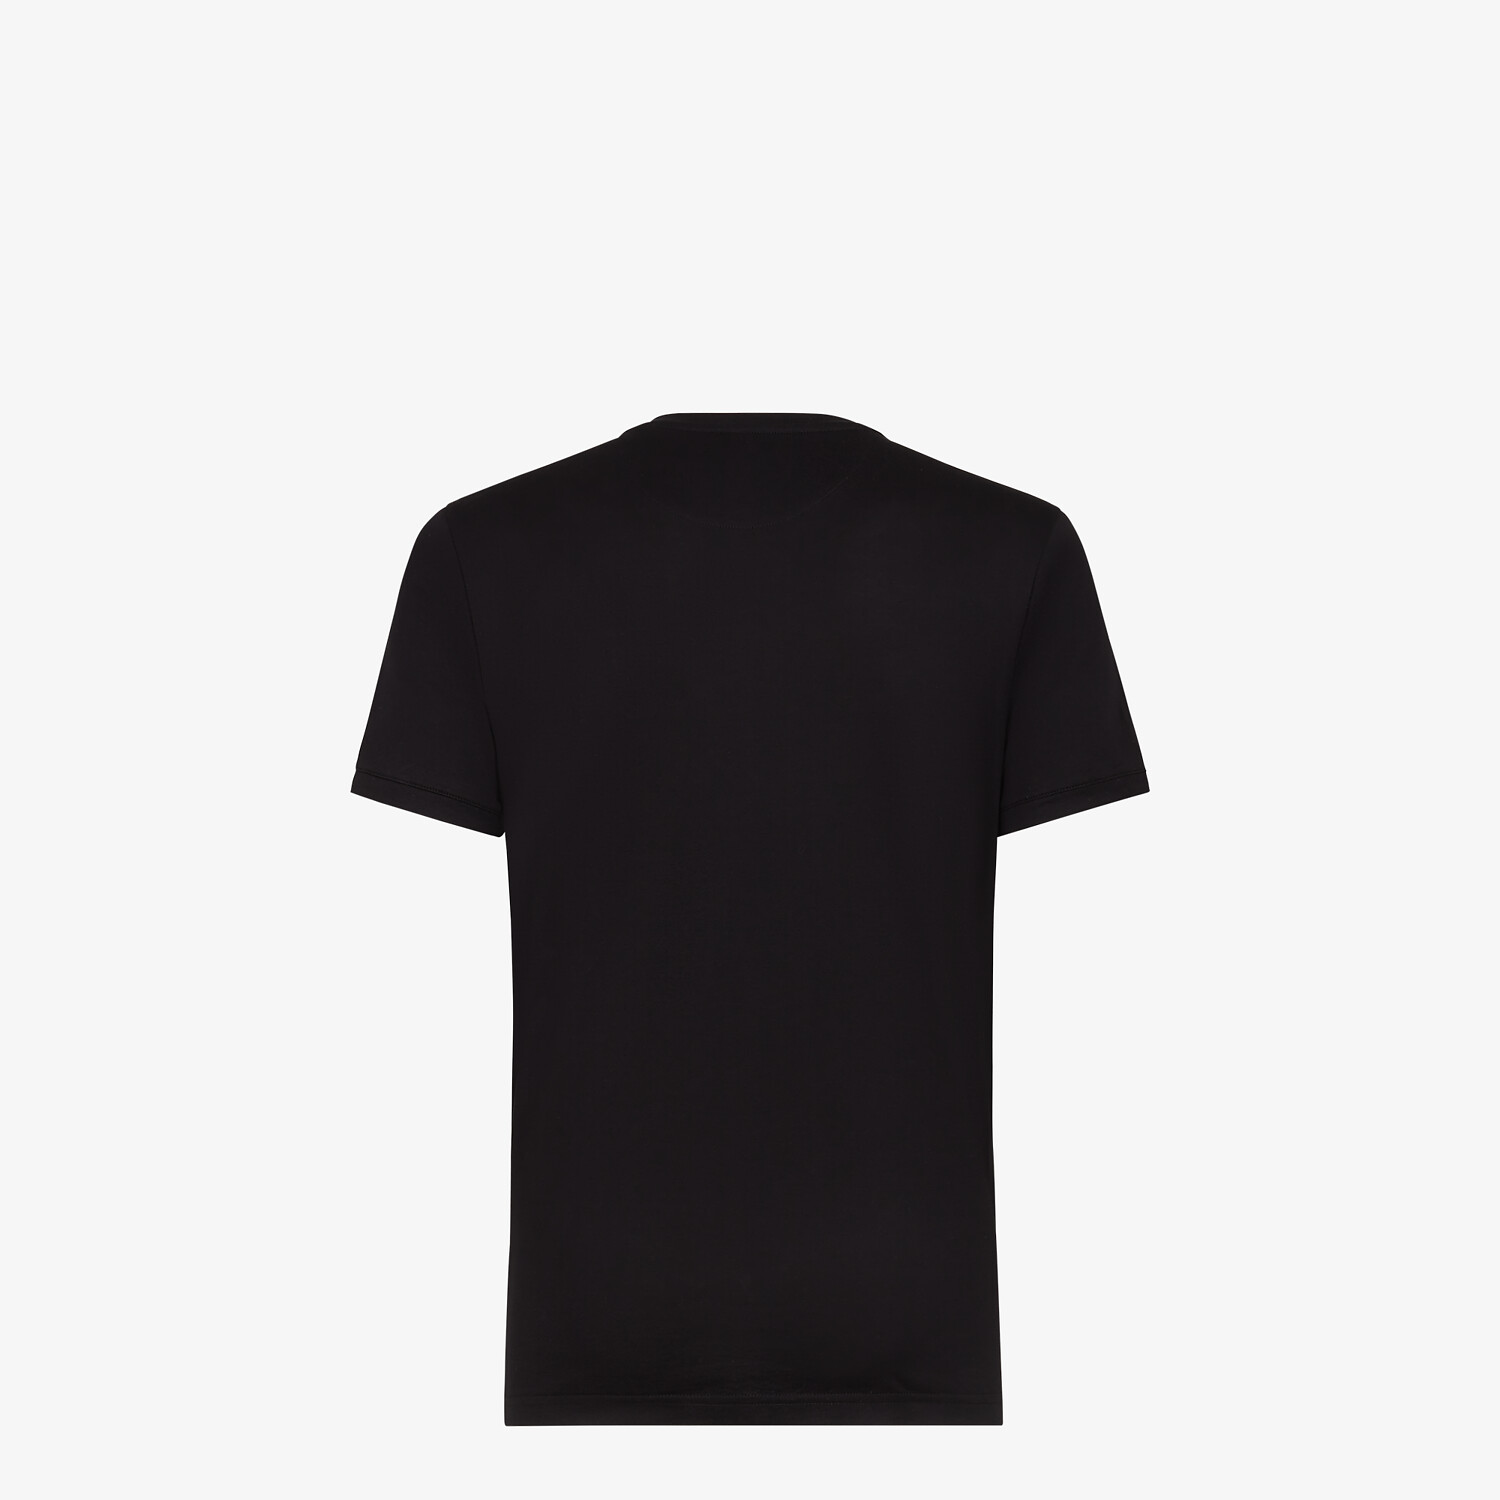 FENDI T-SHIRT - Black cotton T-shirt - view 2 detail